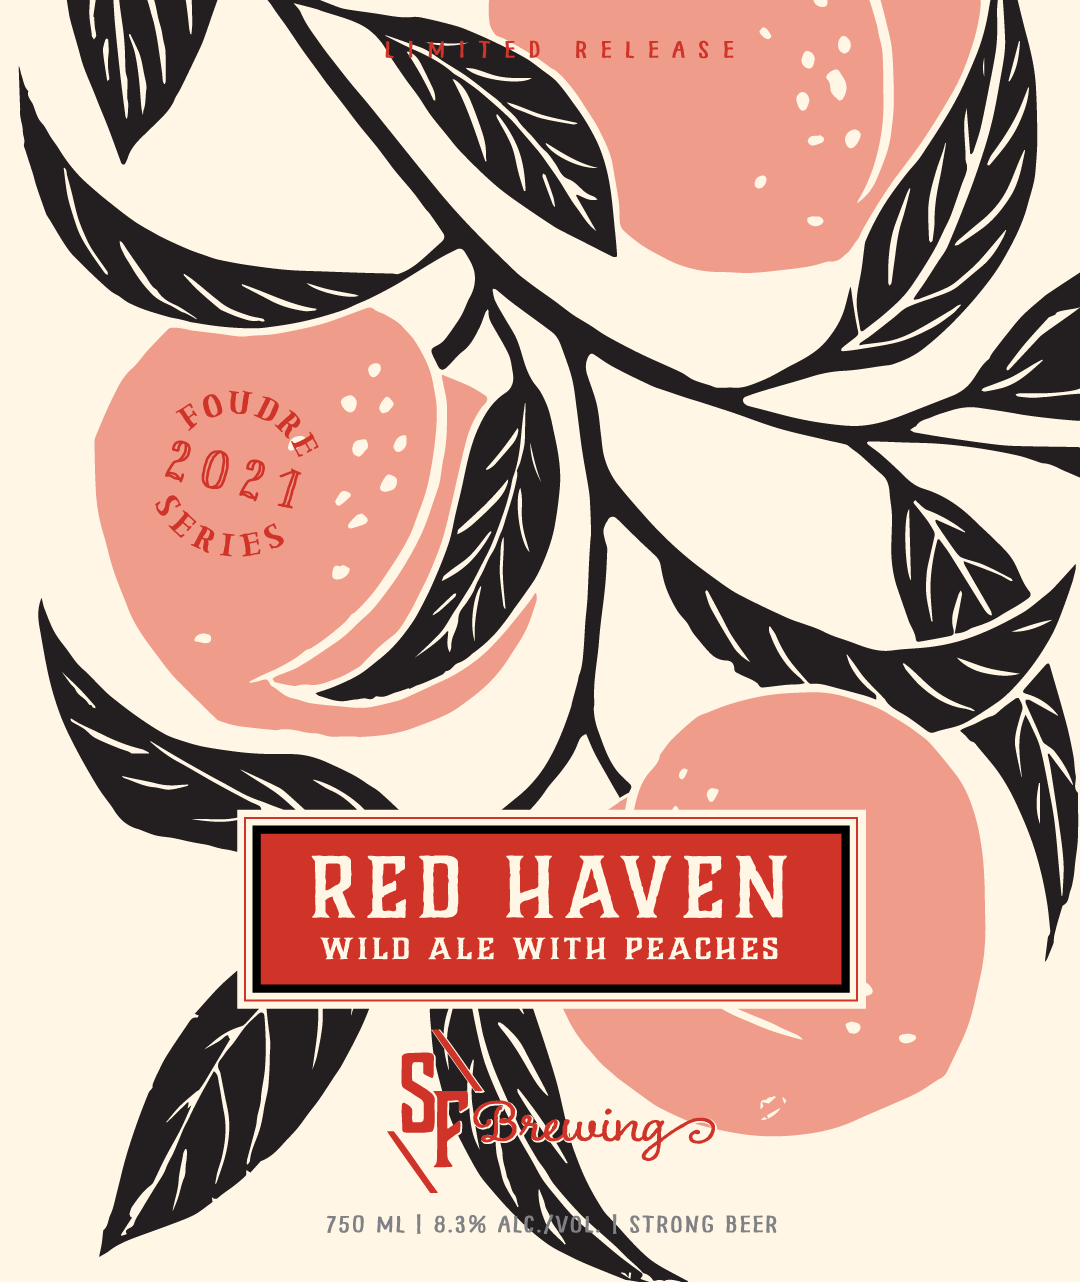 RED HAVEN – WILD ALE WITH PEACHES